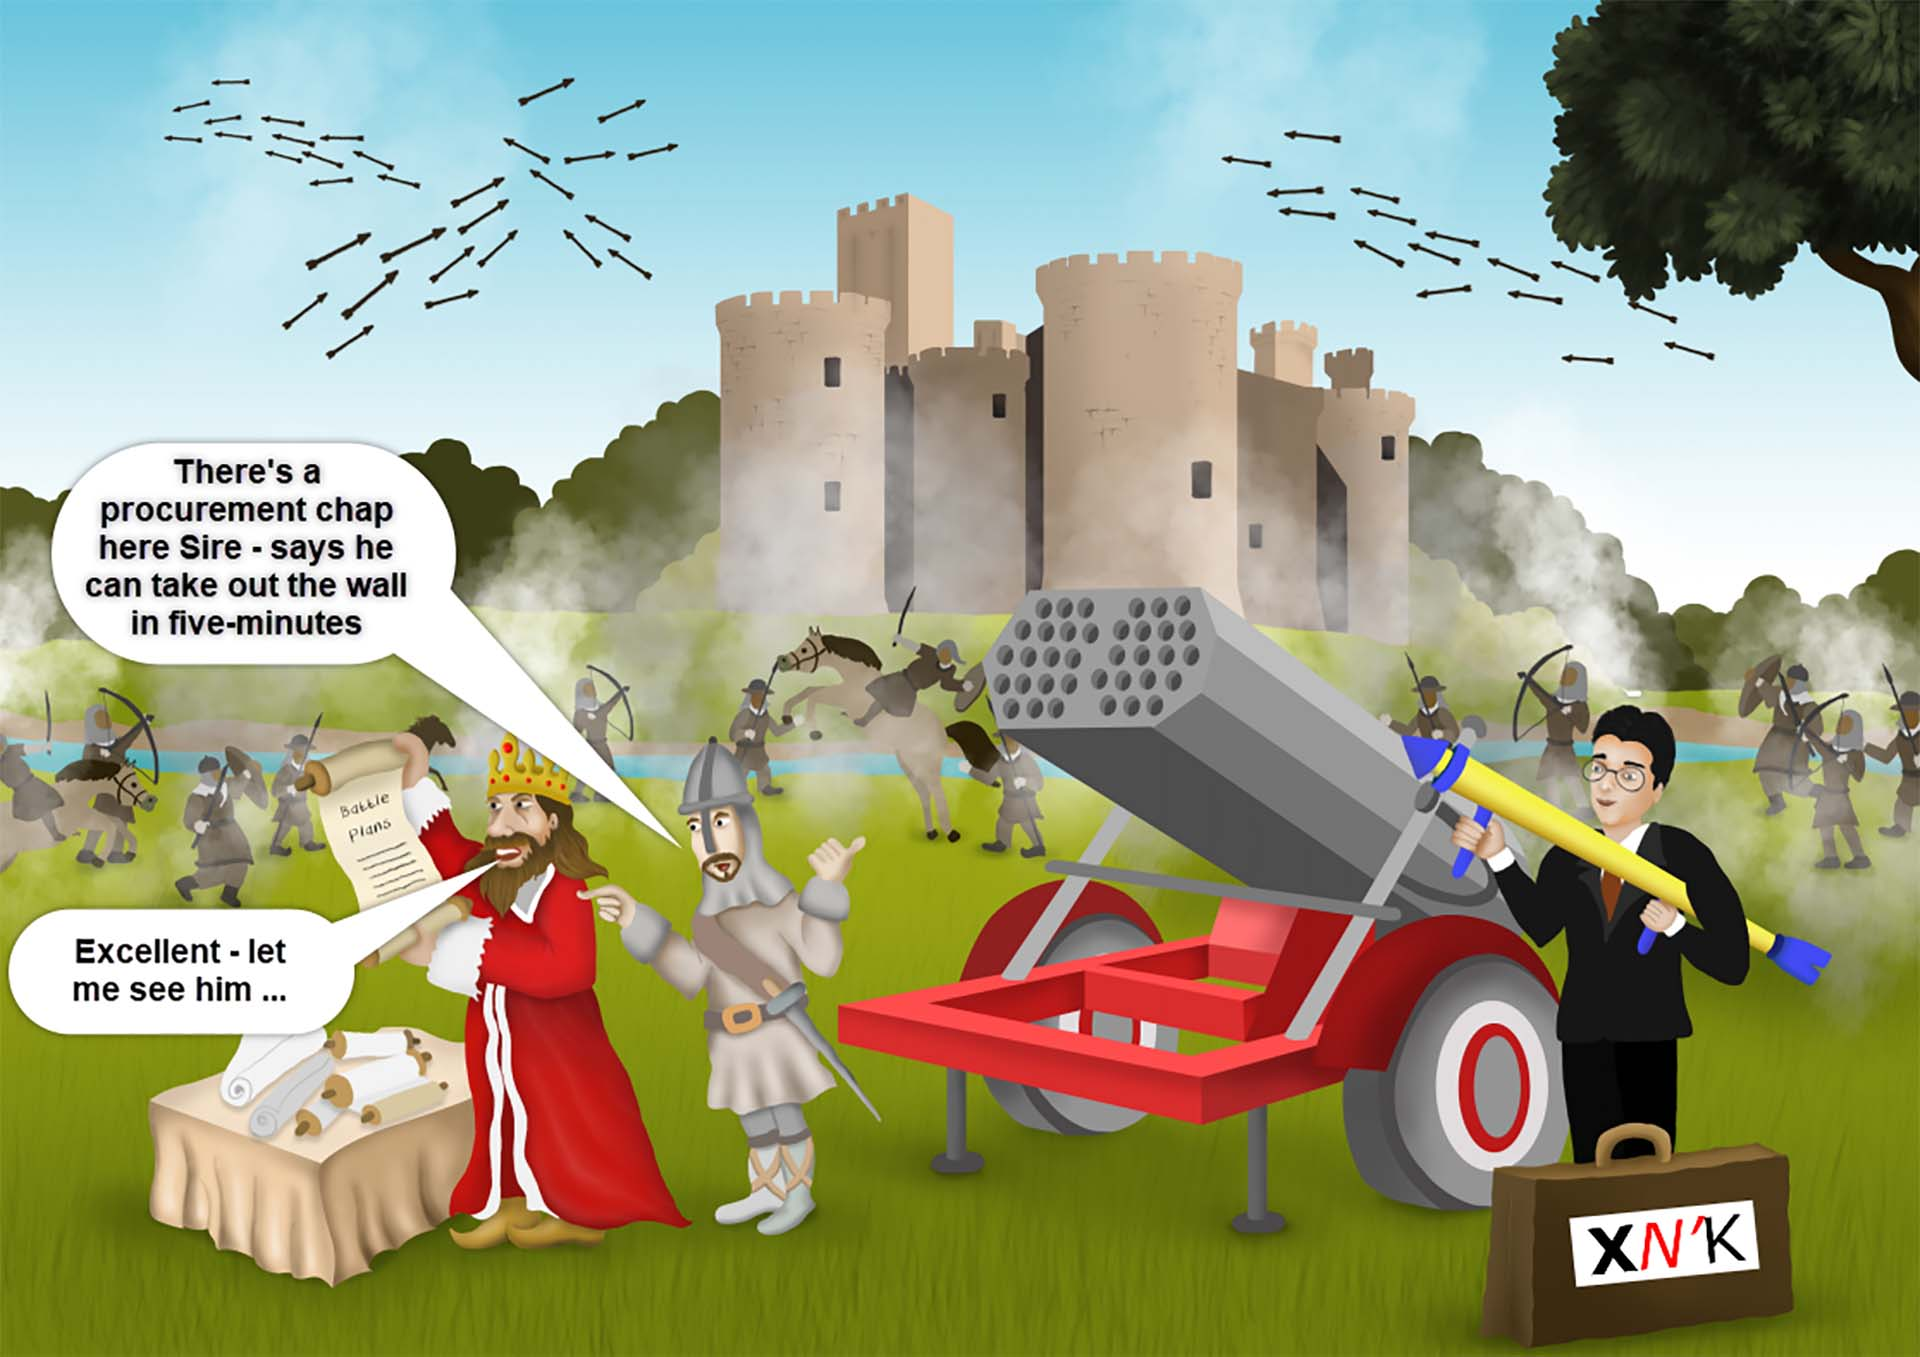 Cartoon showing Jorg providing the King with a great solution to help him storm the castle